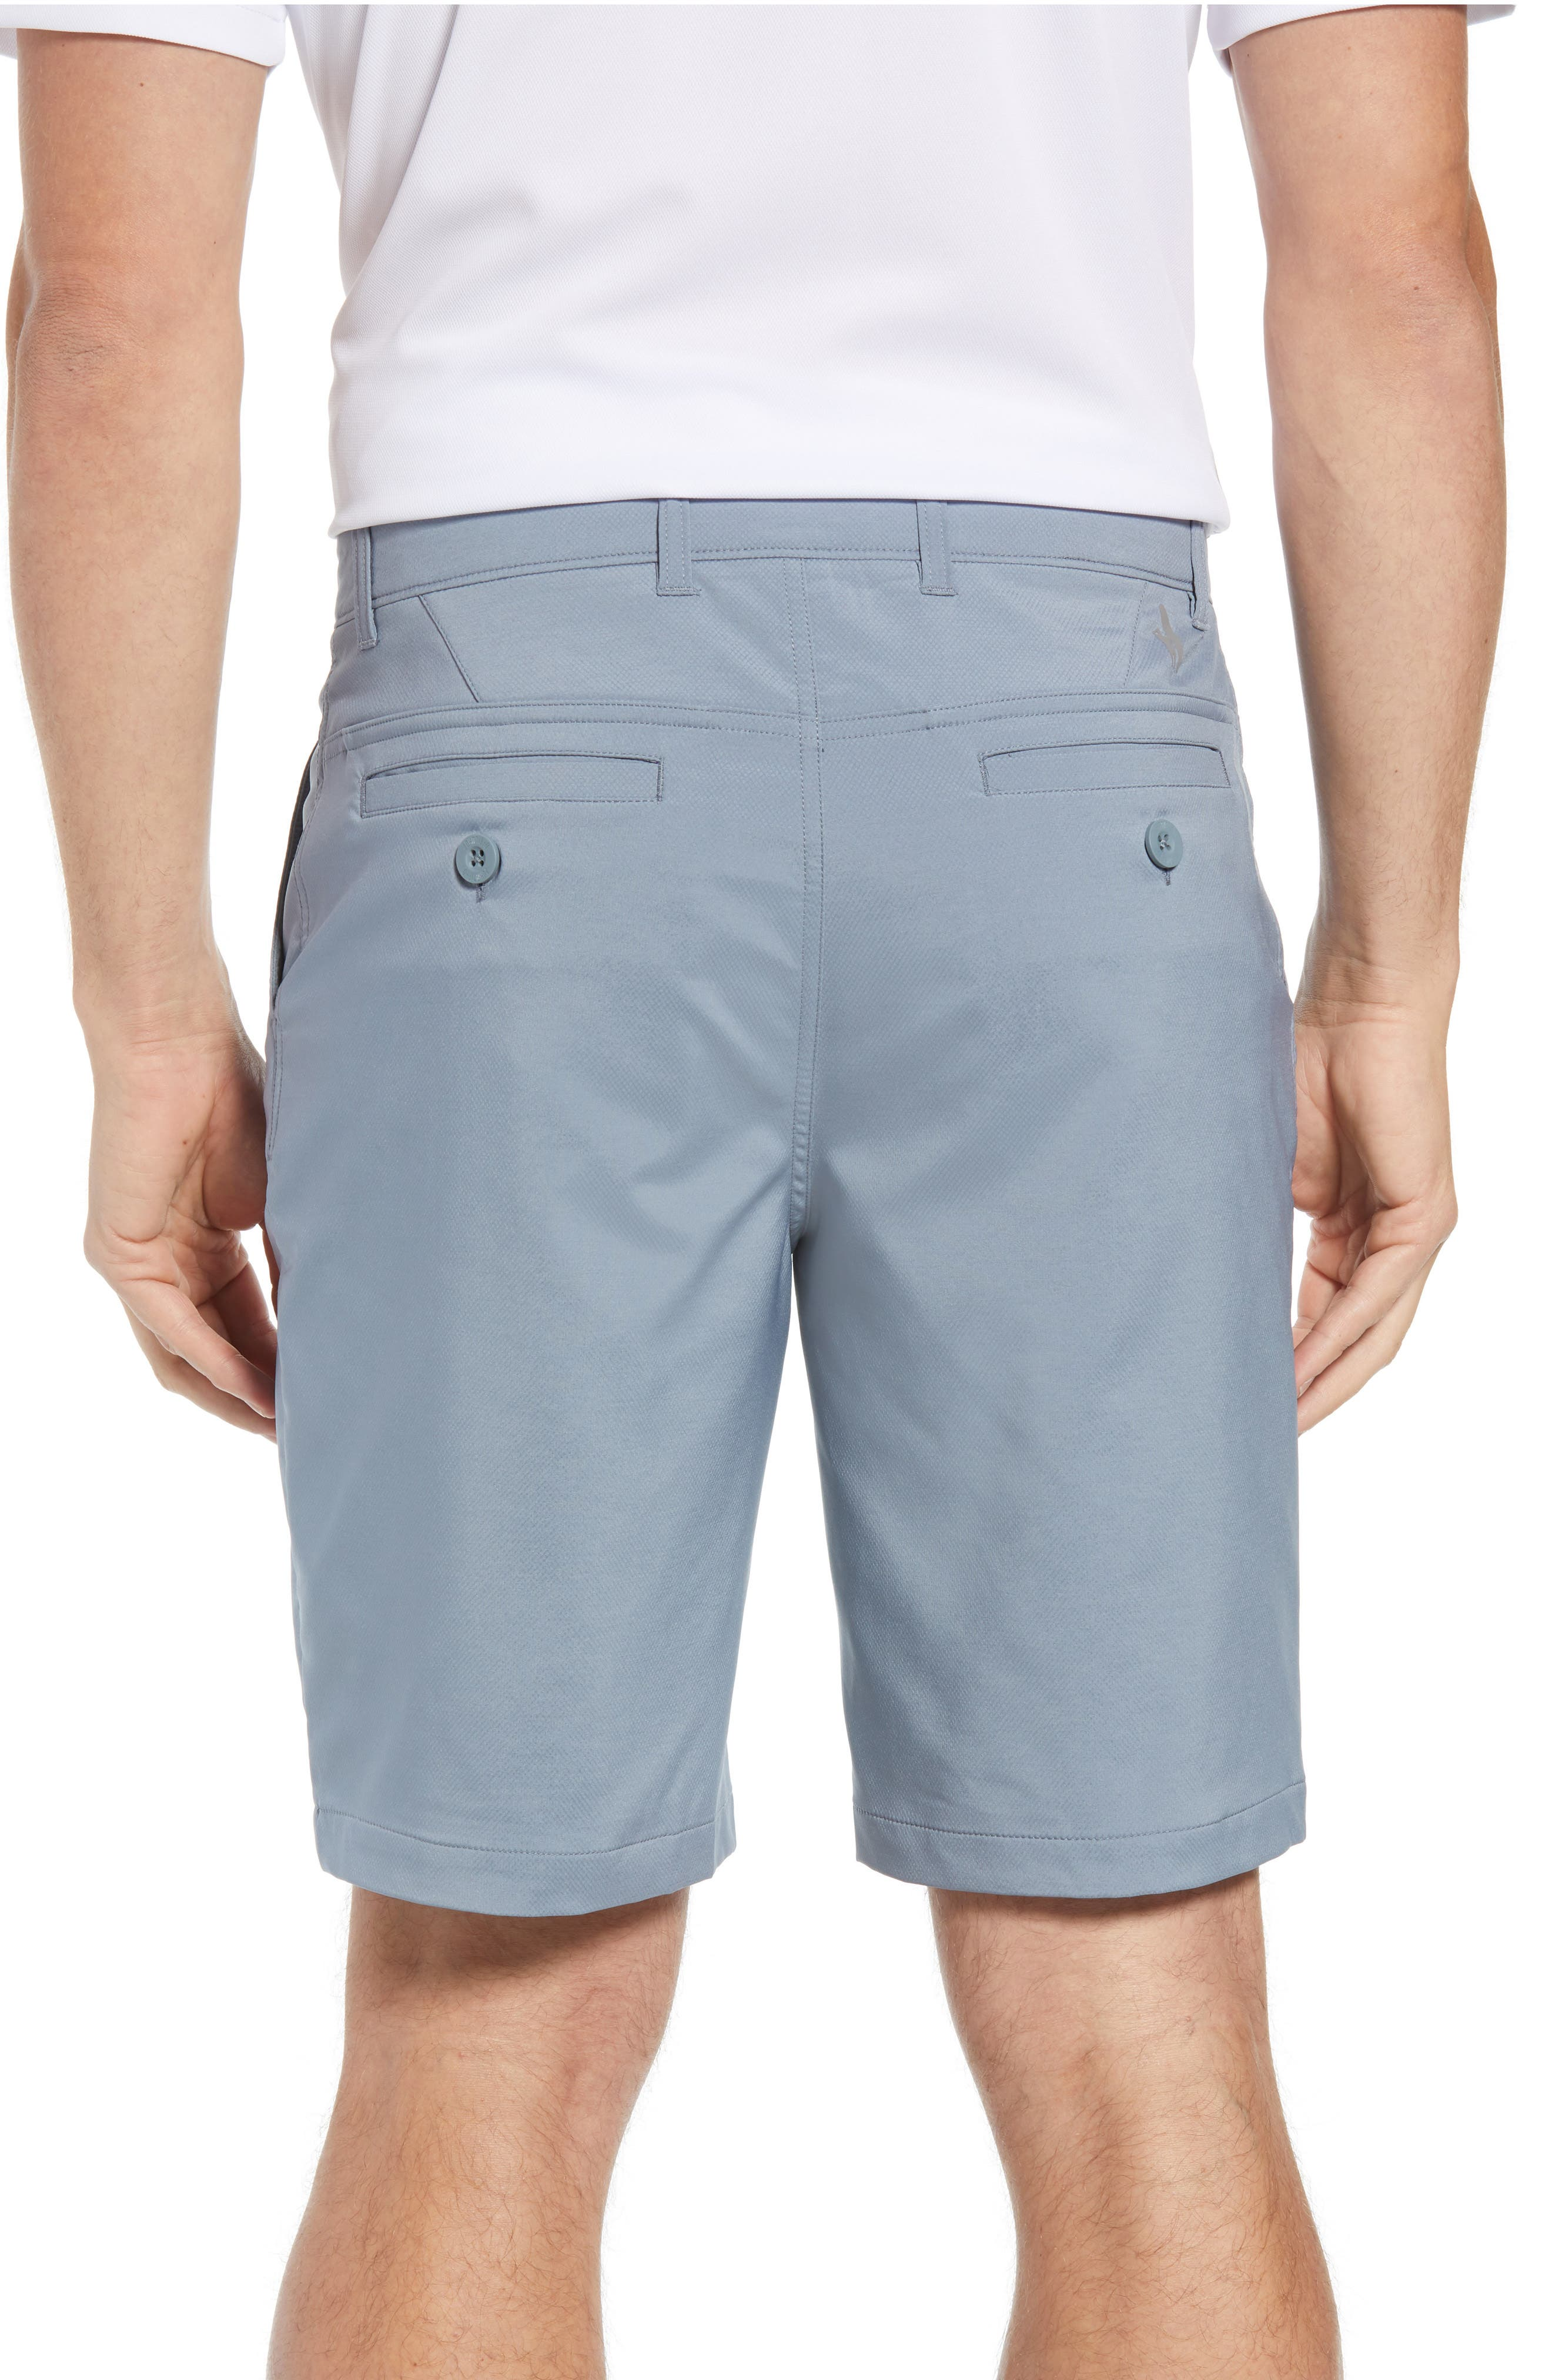 Mulligan Regular Fit Prep-Formance Shorts,                             Alternate thumbnail 2, color,                             CLOUDBREAK